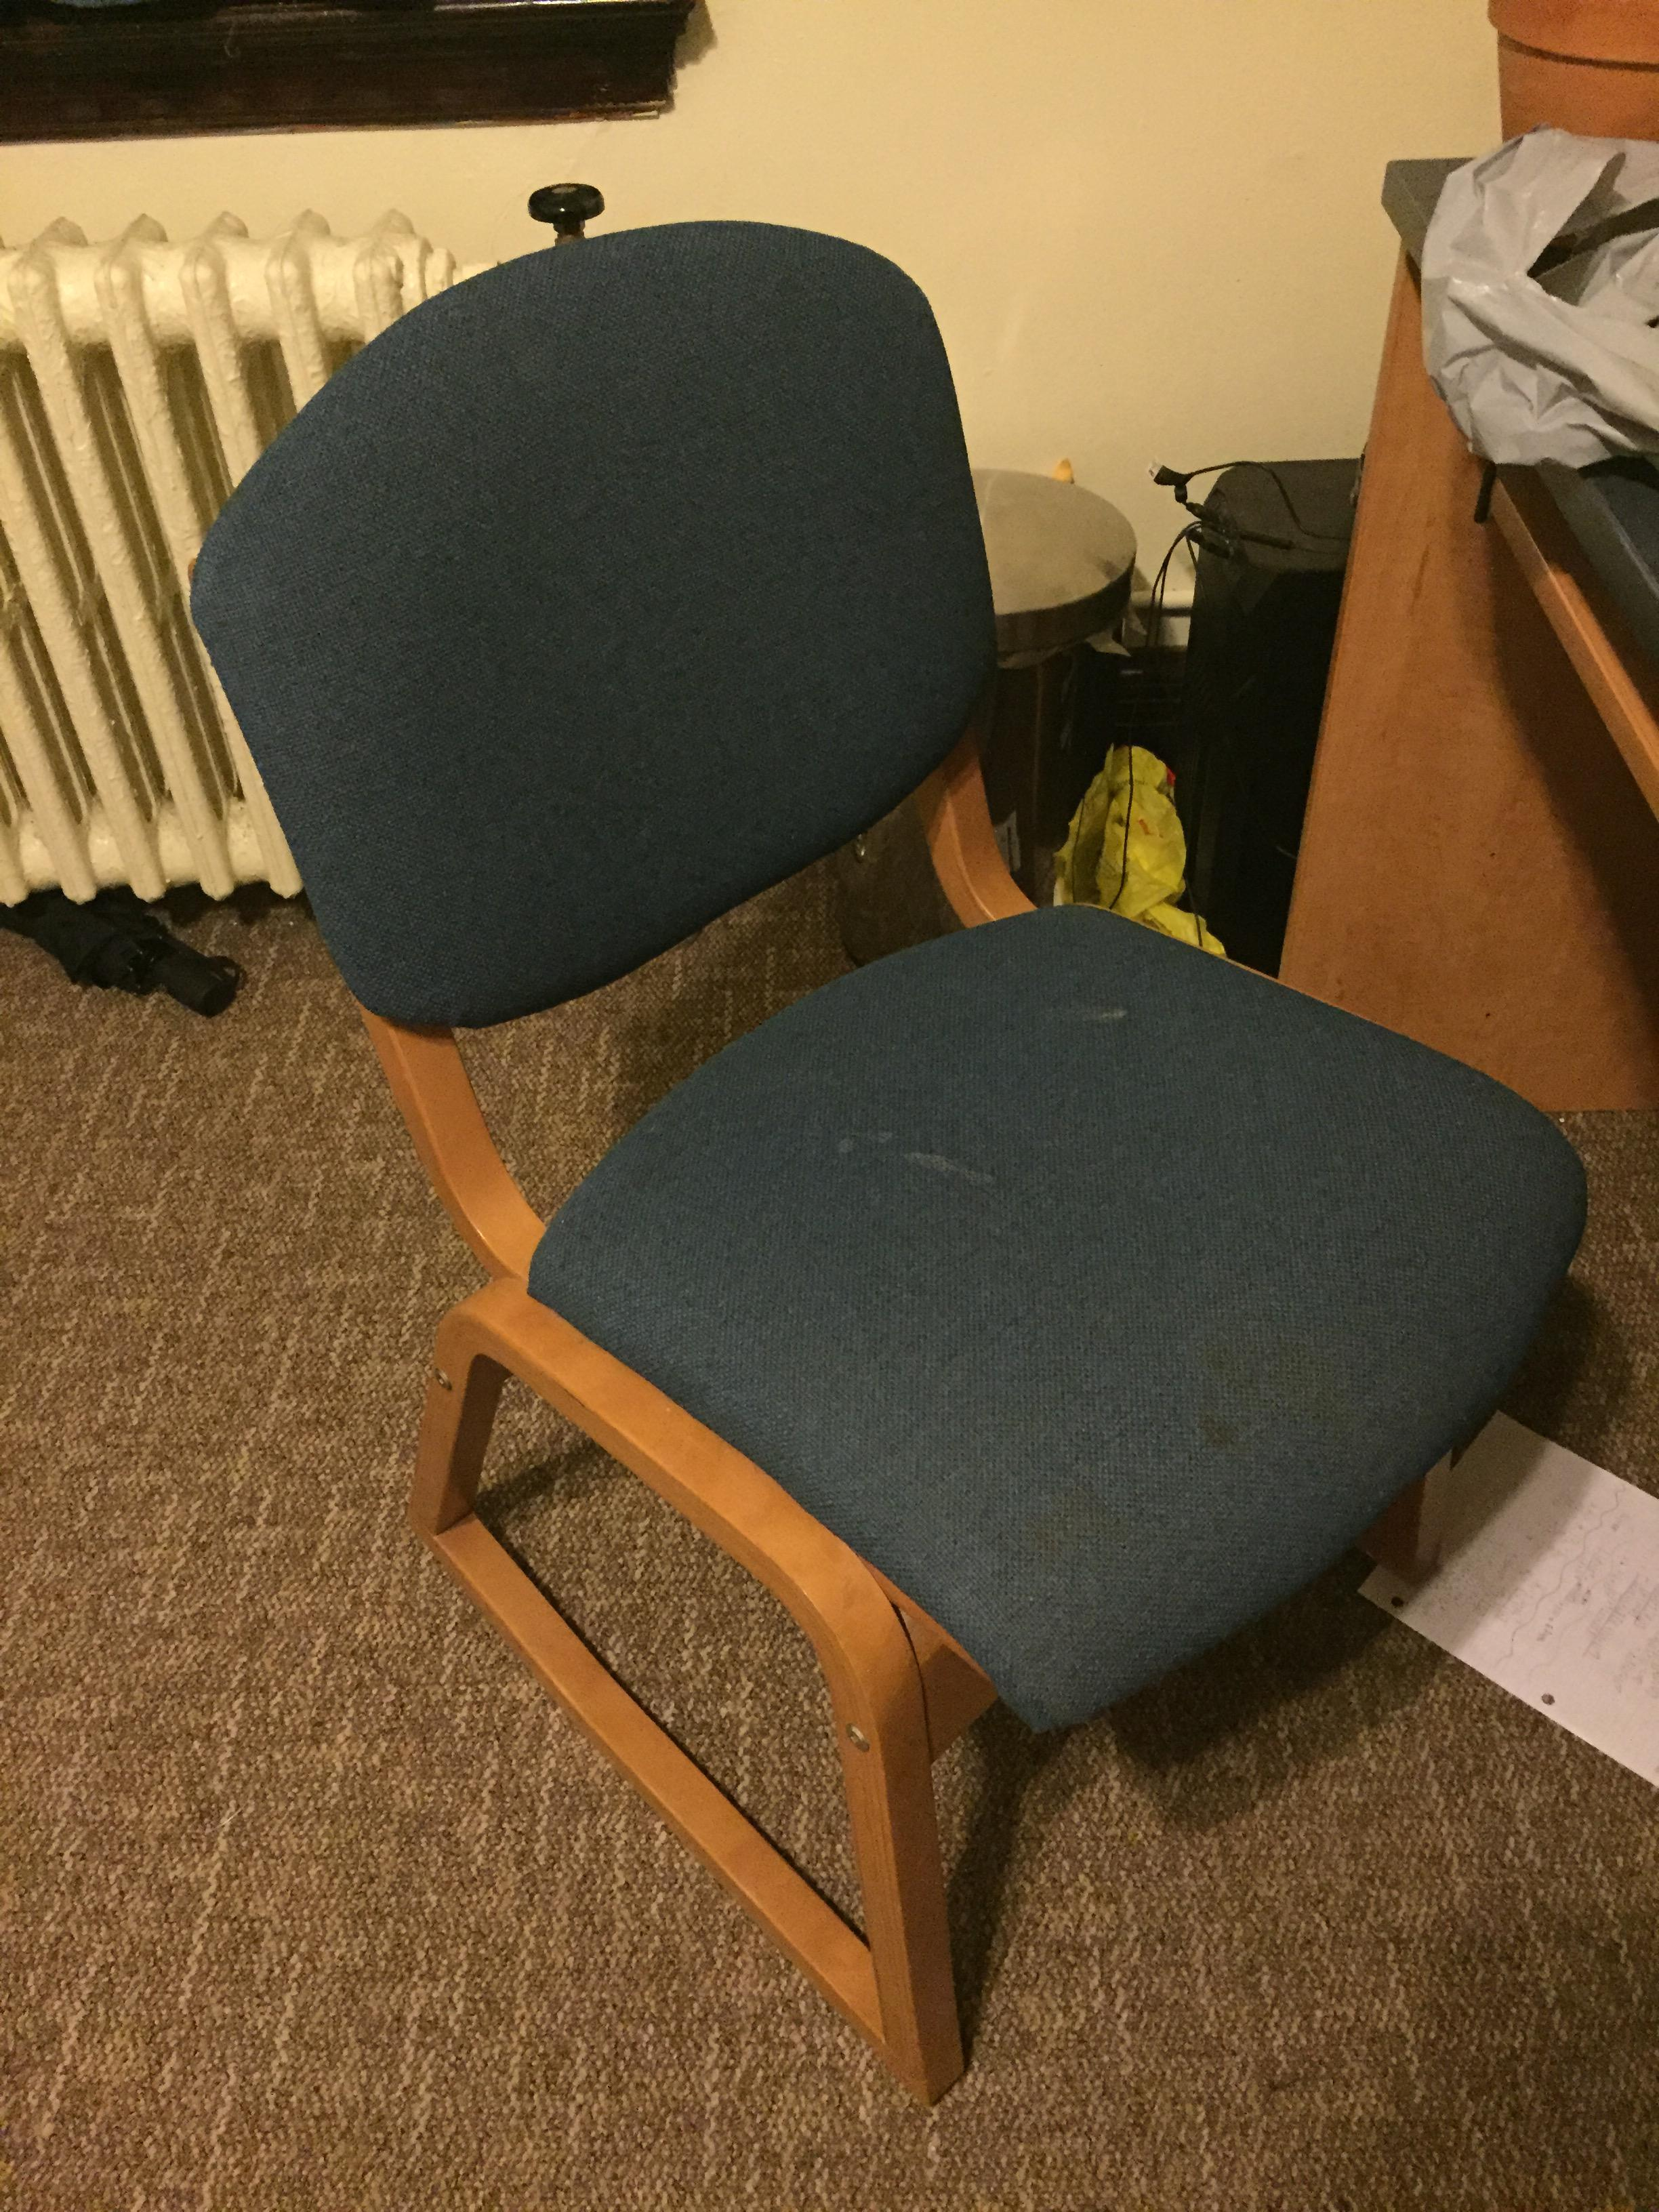 Ugly Desk Chair